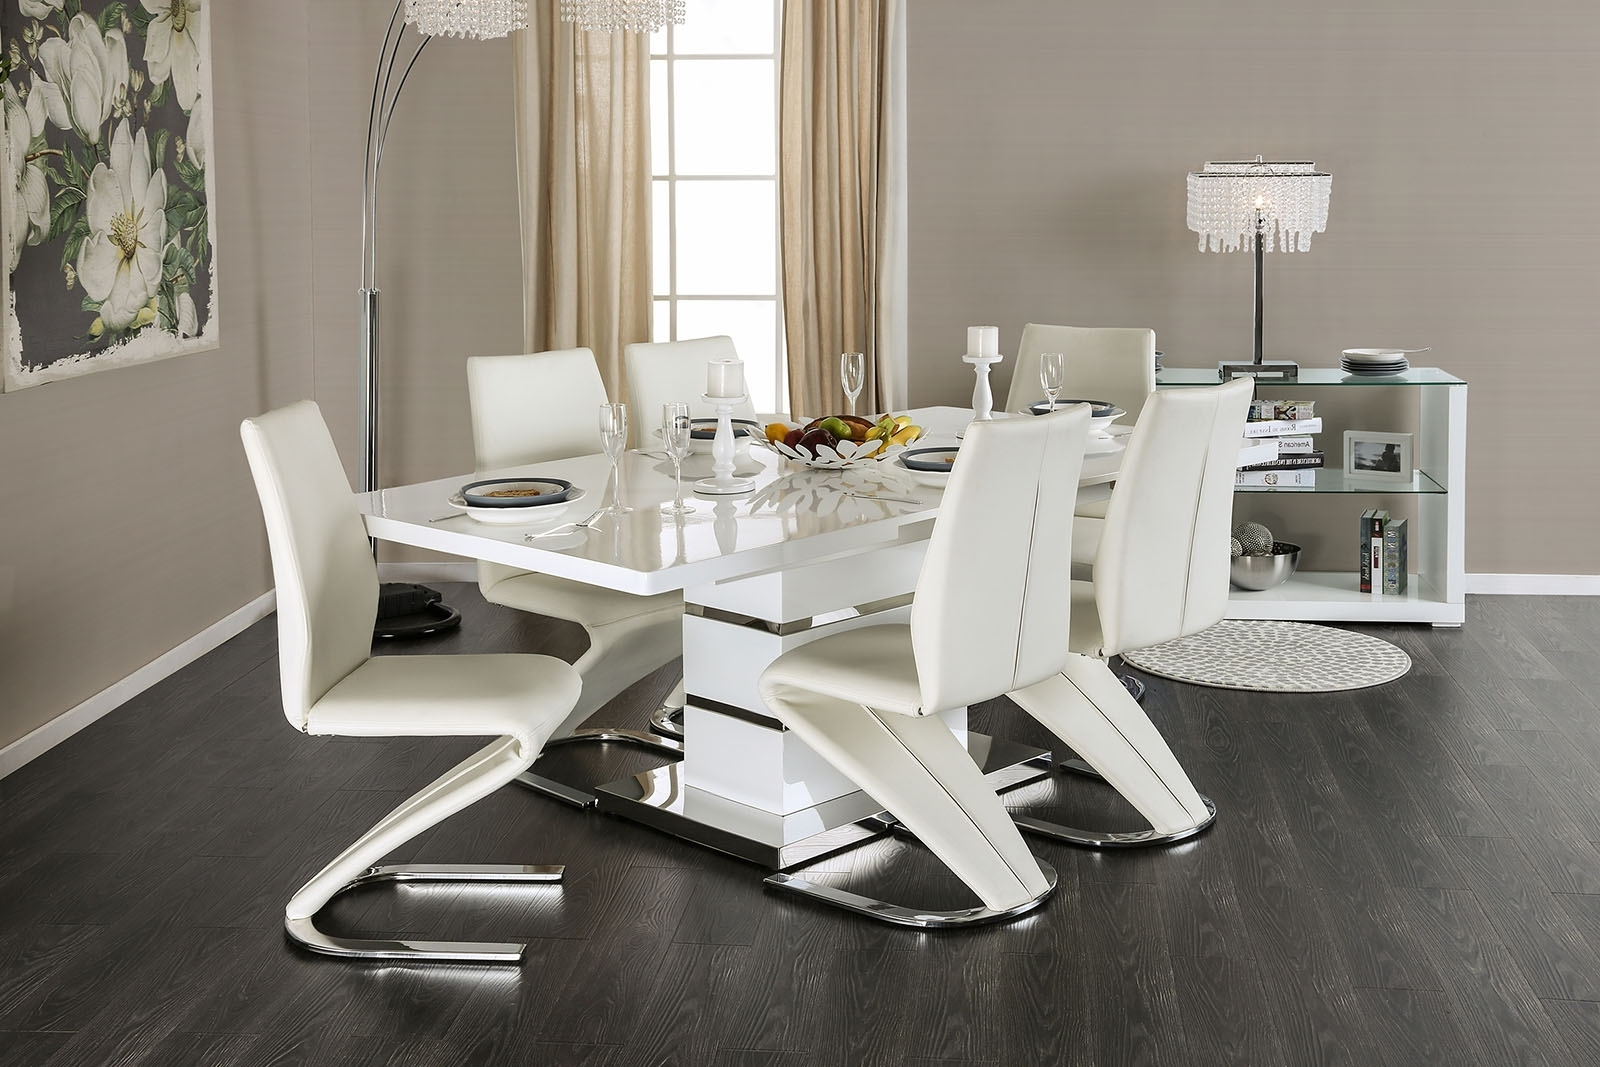 Recent Midvale Contemporary Style White High Gloss Lacquer Finish & Chrome Intended For Chrome Dining Sets (View 19 of 25)